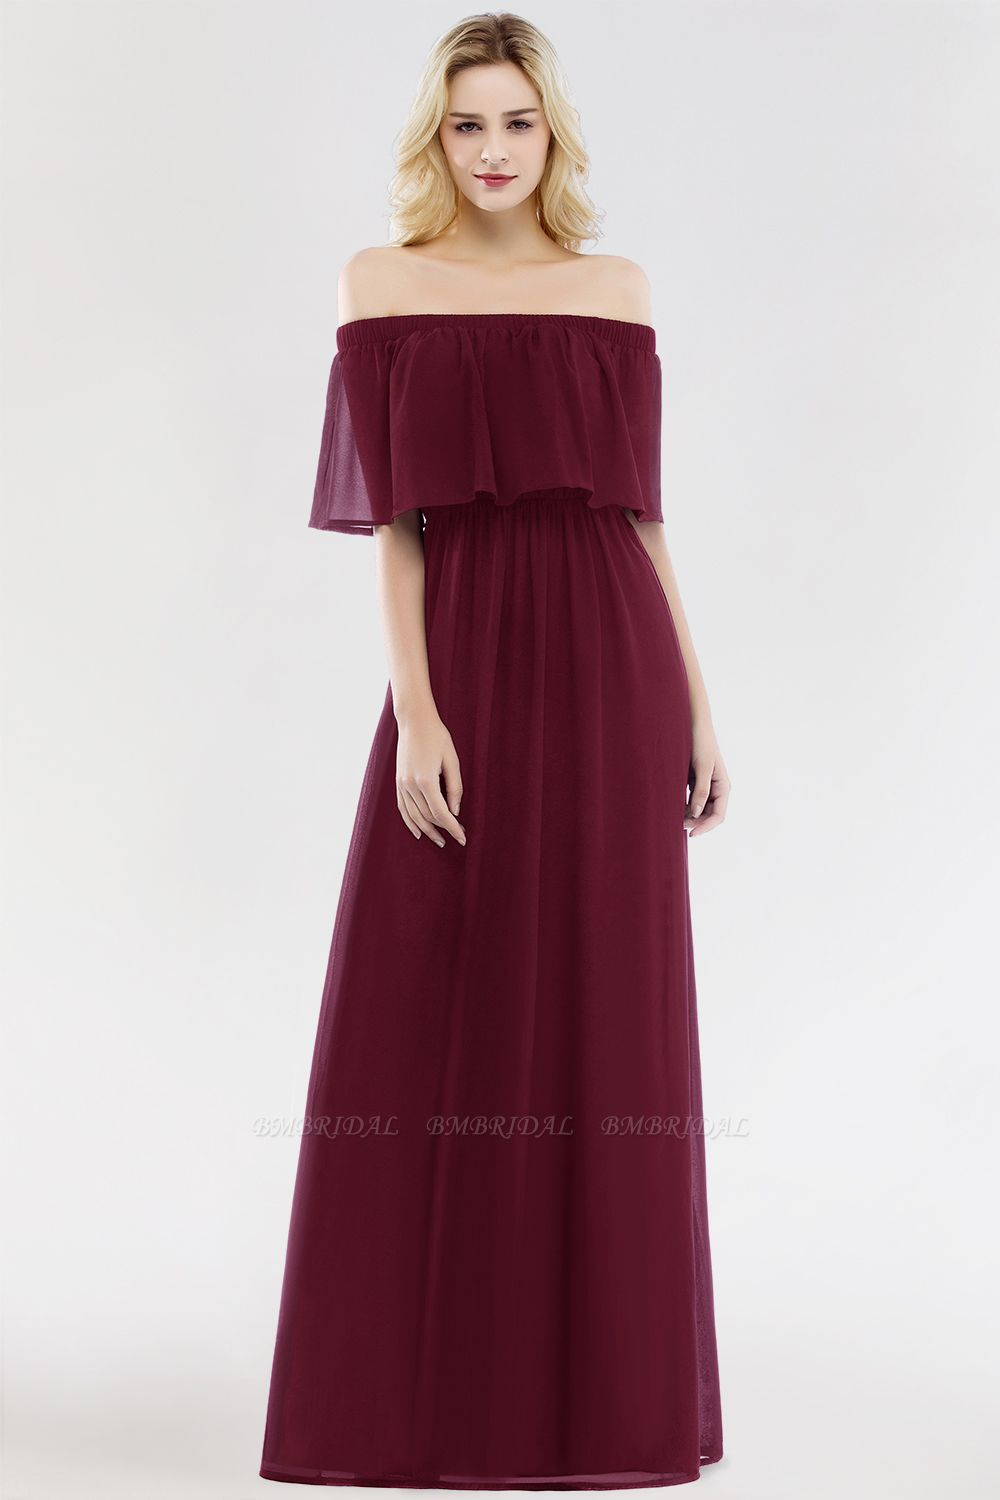 burgundy bridesmaid dress livinglikev fashion blogger bmbridal